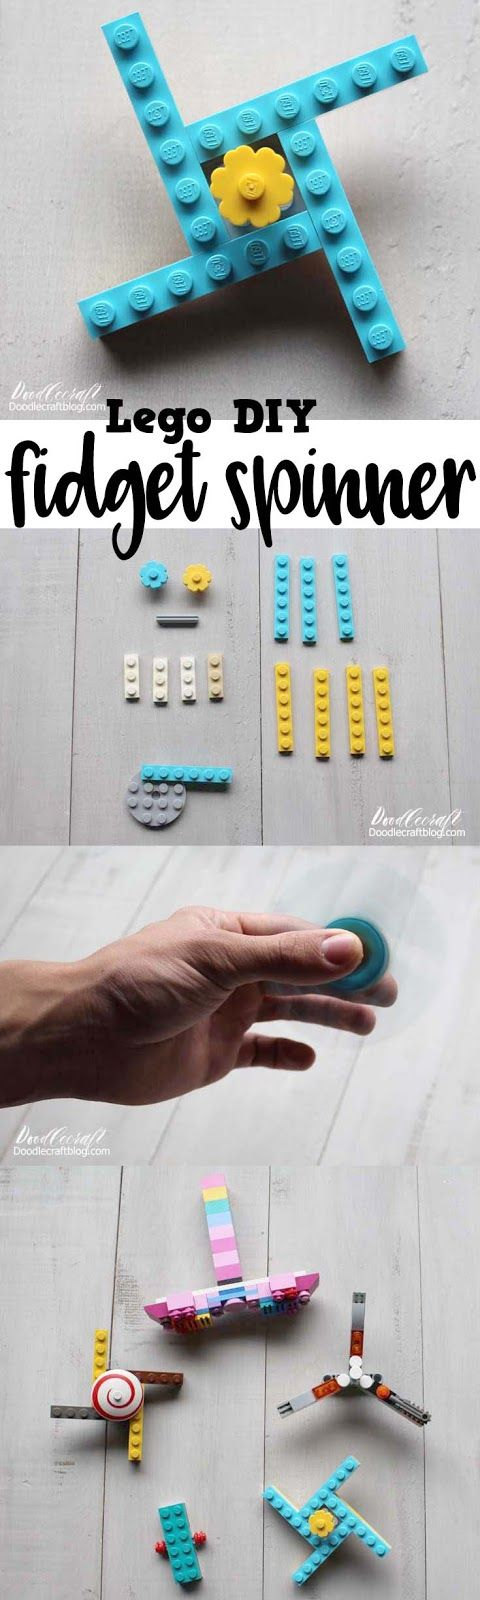 Easy LEGO Fidget Spinner DIY! Here's a fun summer kids craft activity! We spread a big blanket on the ground and then piled all our Lego pieces on it.  I told my kids I wanted each of them to build a fidget spinner.  It took us a couple hours...lots of sifting and sorting through pieces to find the ones we needed.